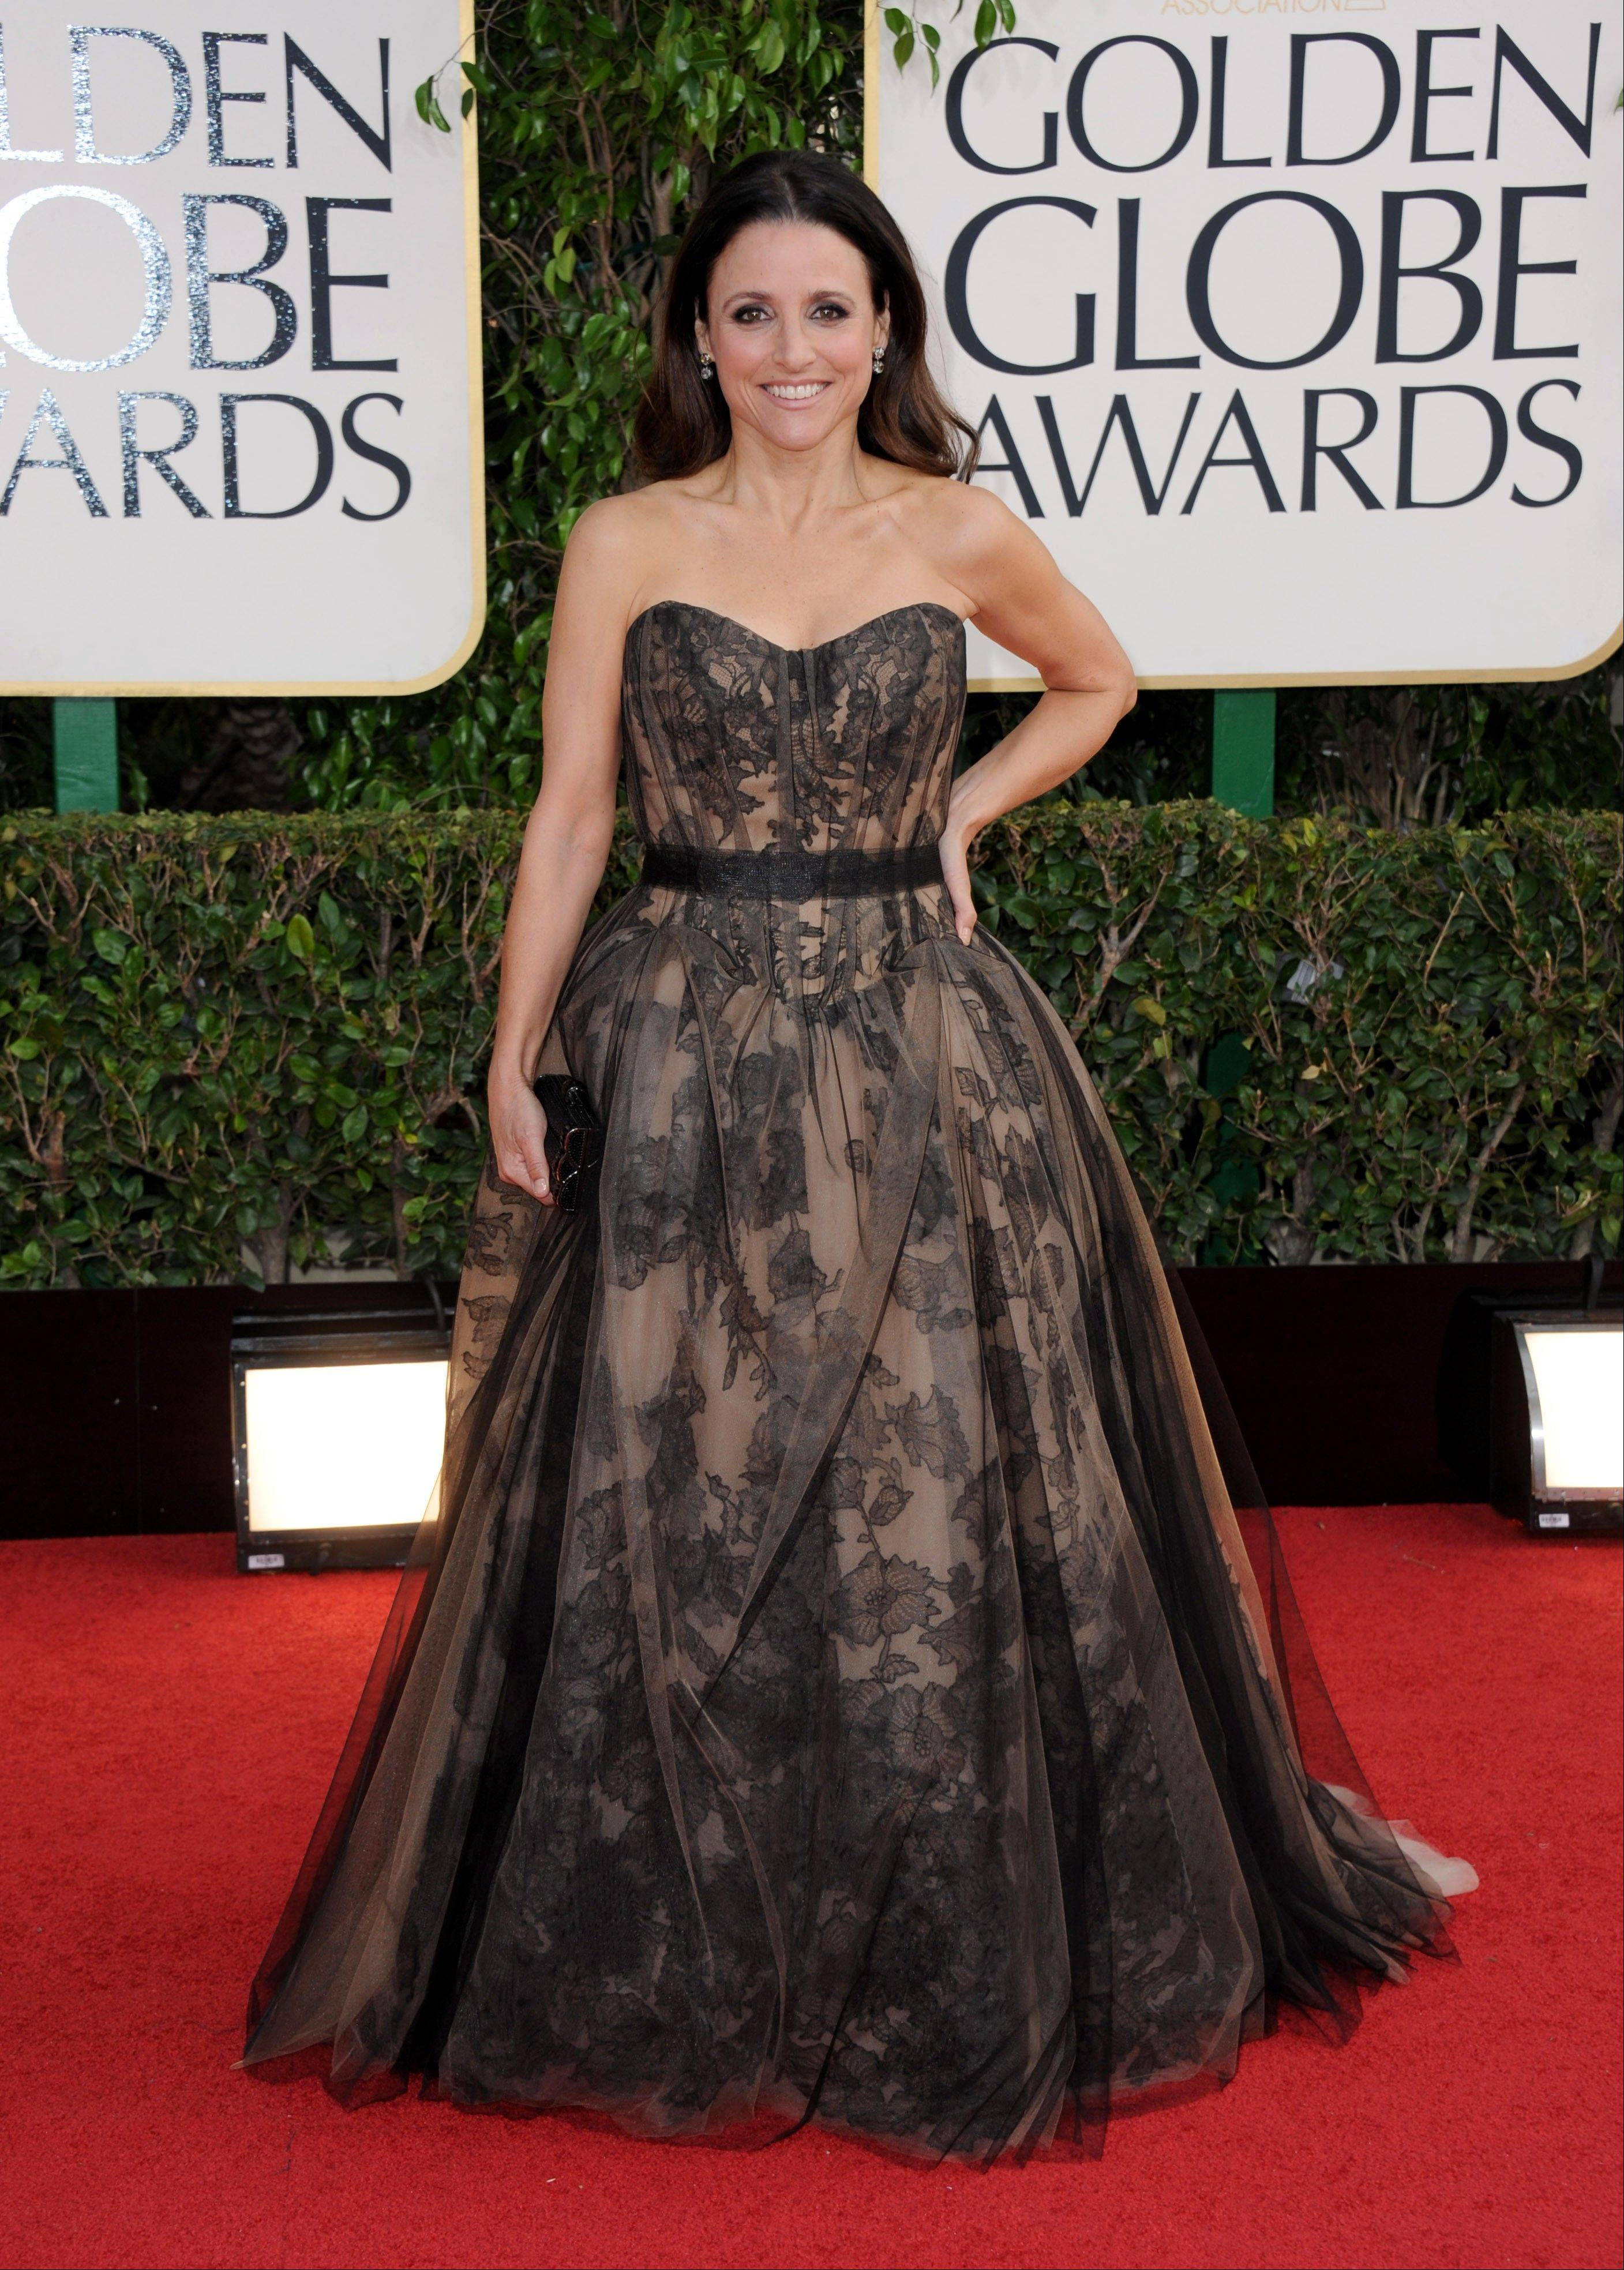 Actress Julia Louis-Dreyfus arrives at the 70th Annual Golden Globe Awards at the Beverly Hilton Hotel on Sunday Jan. 13, 2013, in Beverly Hills, Calif.